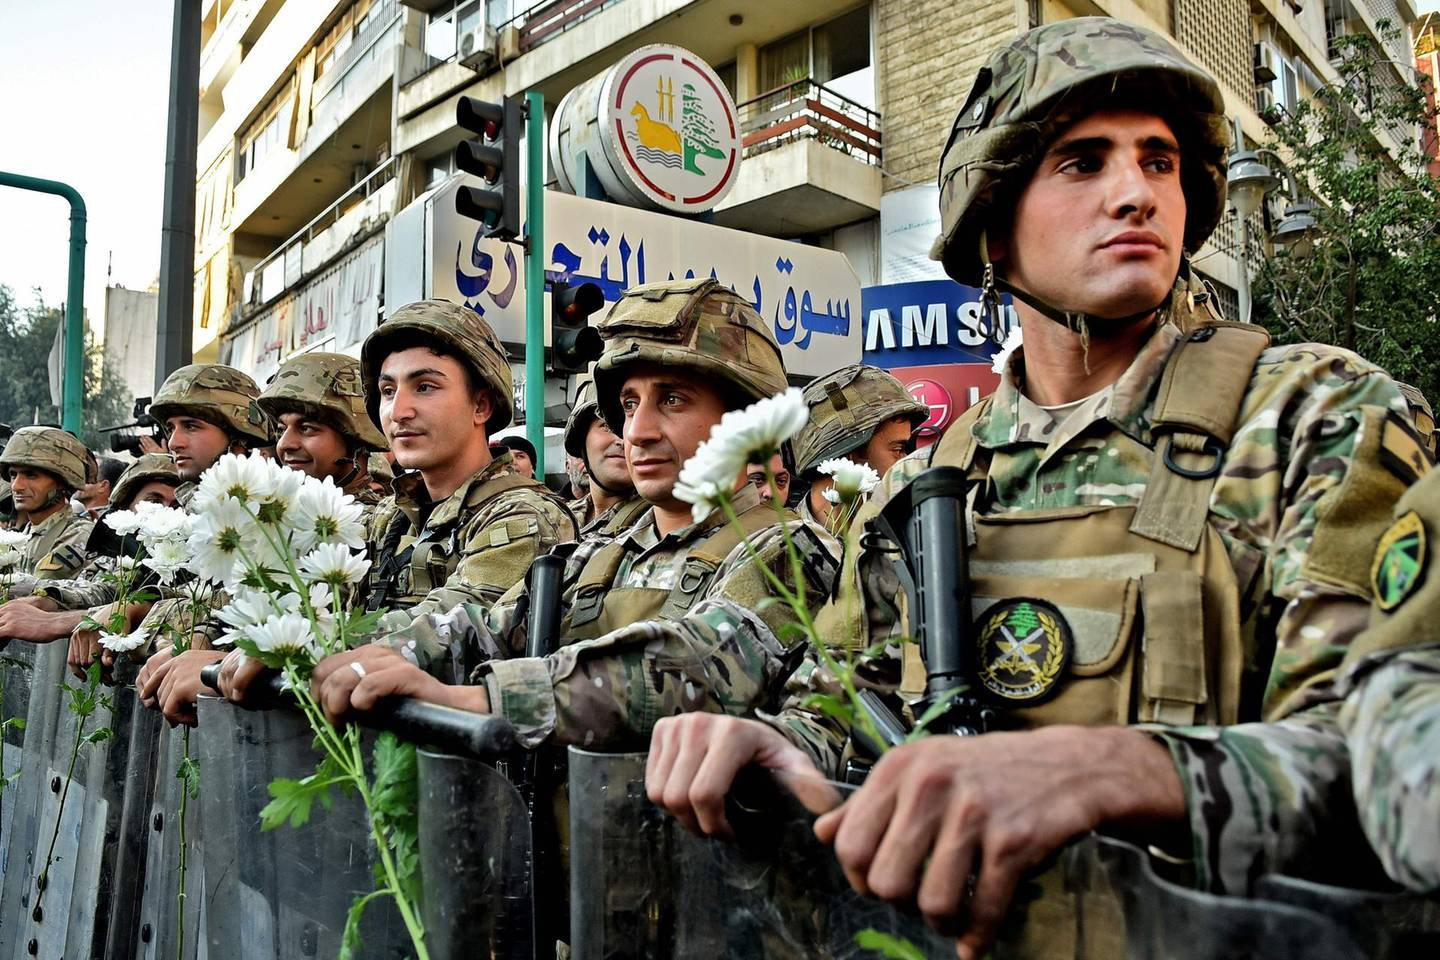 Lebanese army soldiers carry flowers offered to them by a supporter of outgoing Lebanese premier Saad Hariri during a protest in Beirut's Corniche al-Mazraa neighbourhood on December 20, 2019. Anger was fuelled among members of Lebanon's Sunni community who said the prime-minister-designate did not enjoy the sect's backing for a post reserved for Sunni Muslims by a power-sharing system enshrined after the end of the 1975-1990 civil war. / AFP / -